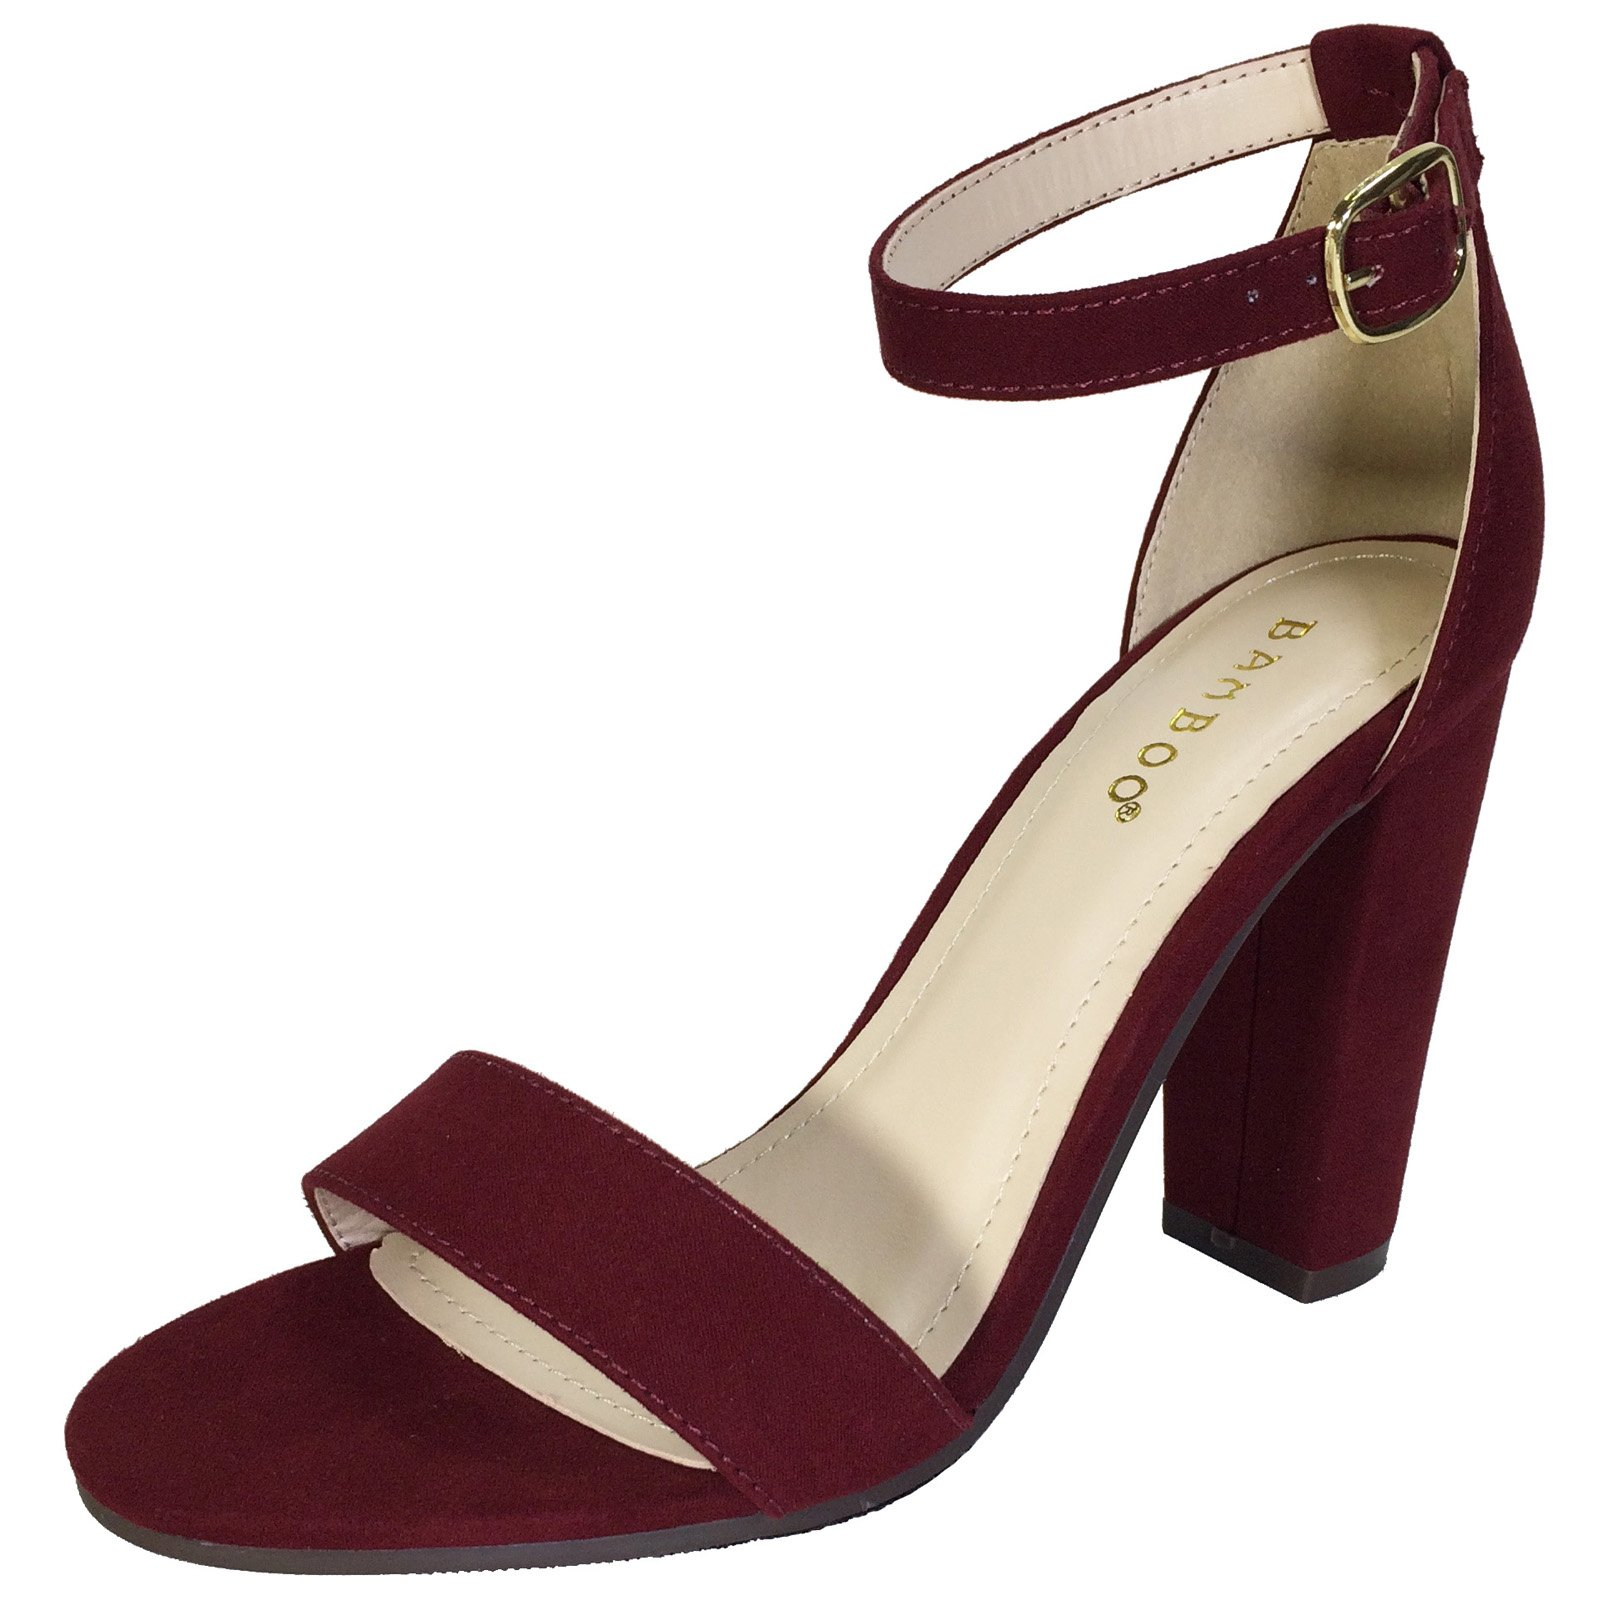 Bamboo Women's Single Band Chunky Heel Sandal with Ankle Strap, Burgundy Faux Suede, 8.5 B US